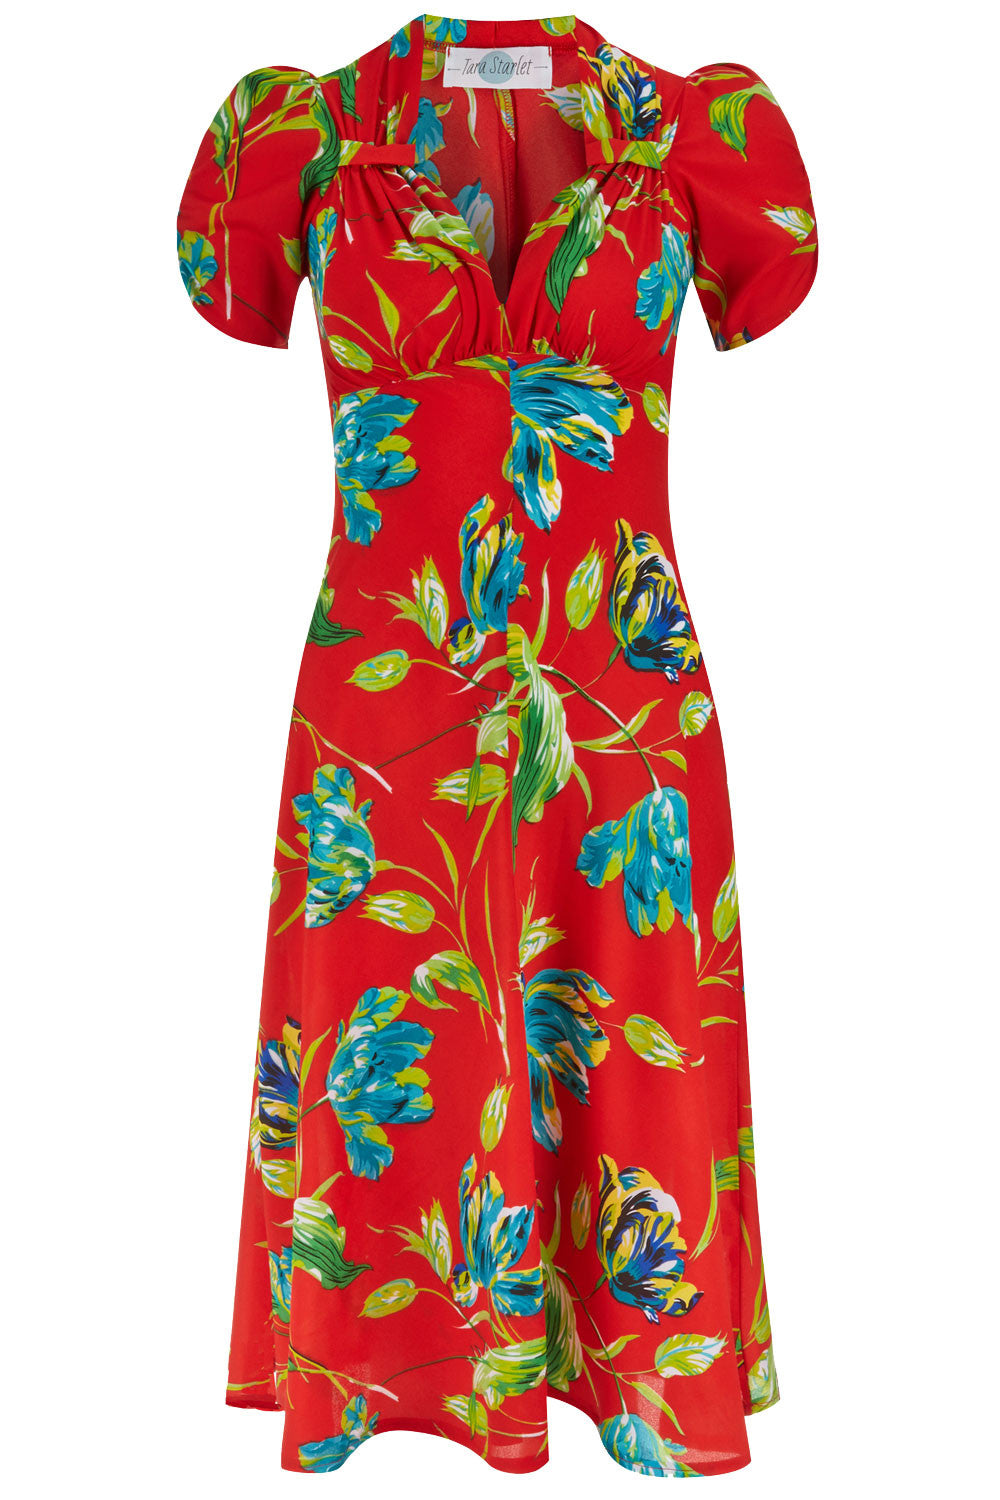 The Floral Sweetheart Dress - Red and Blue